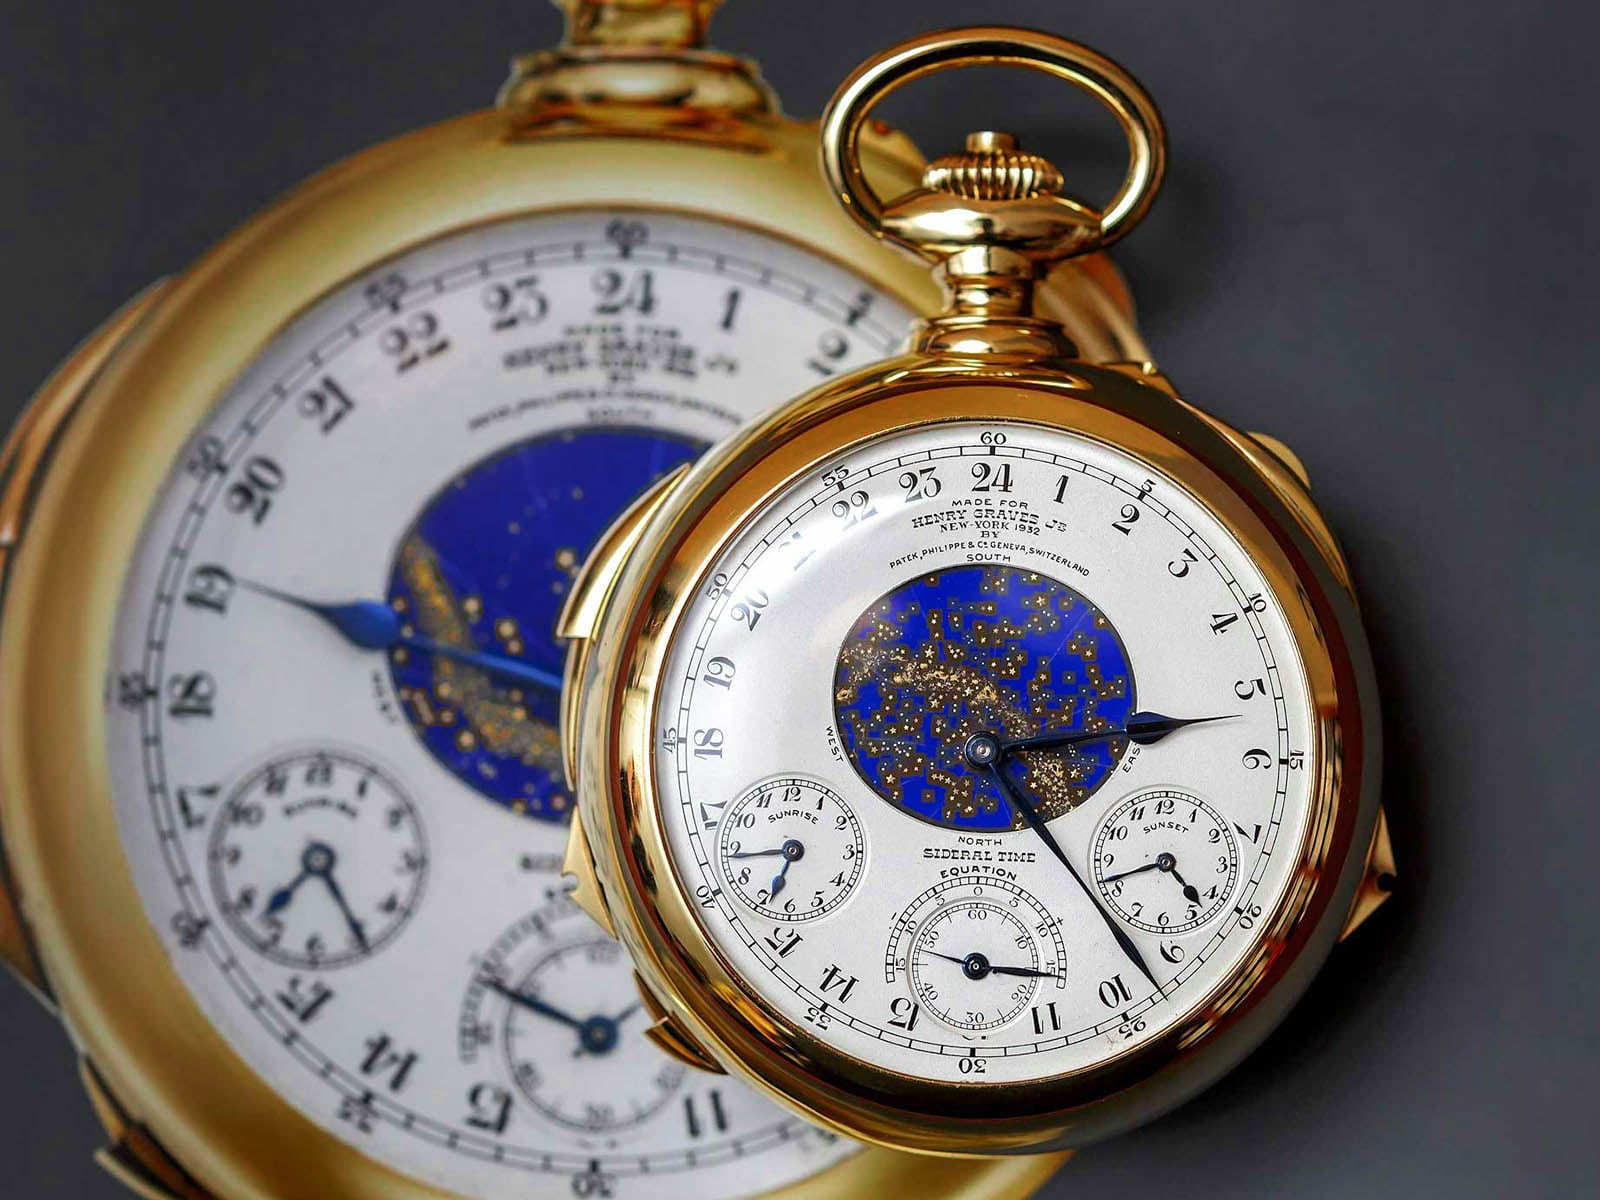 patek-philippe-henry-graves-supercomplication.jpg